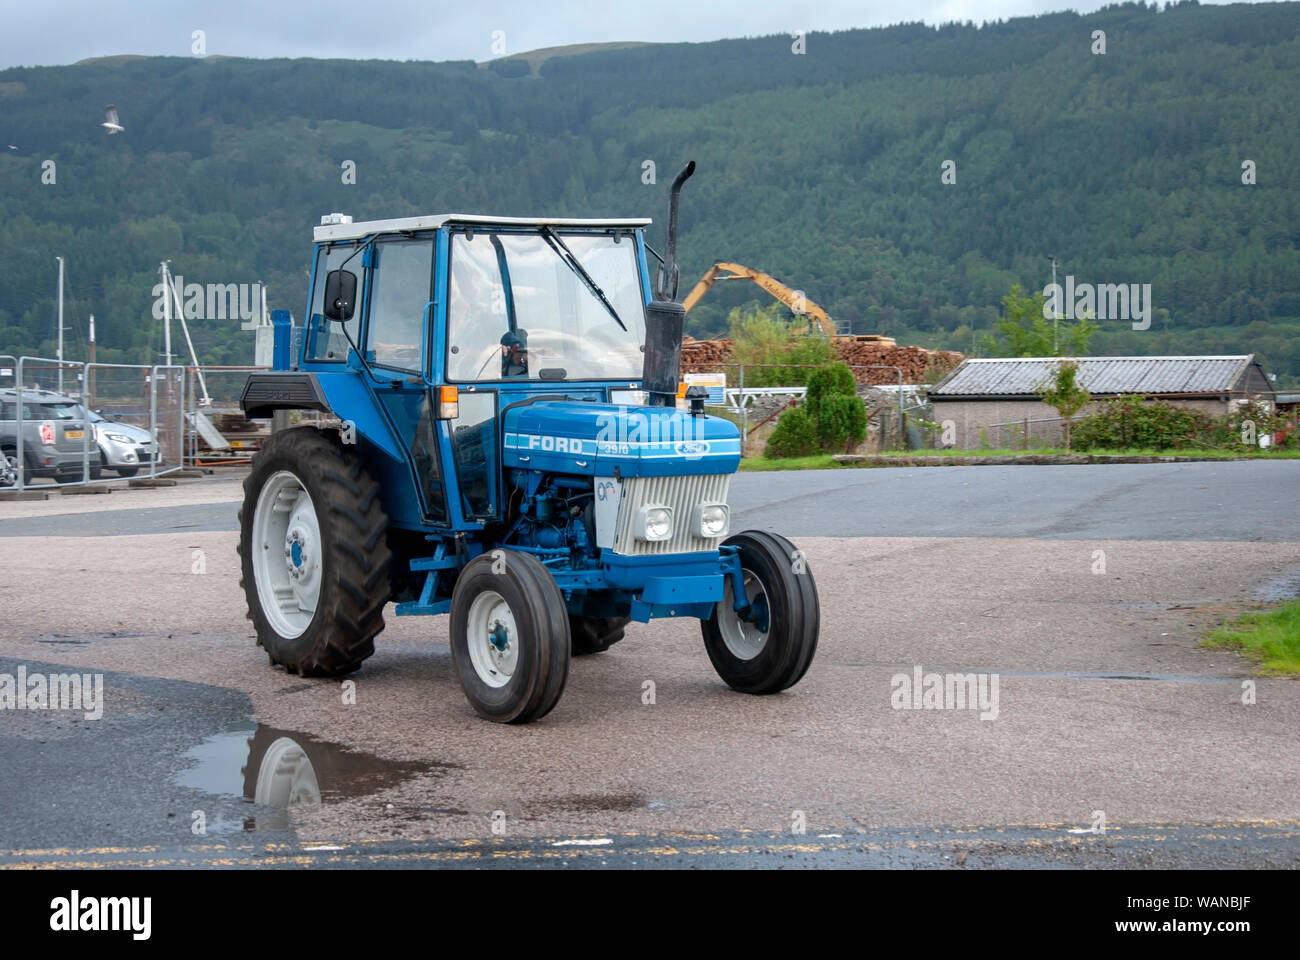 Man Driving 1984 Blue White Ford 3910 Model Tractor With Cab